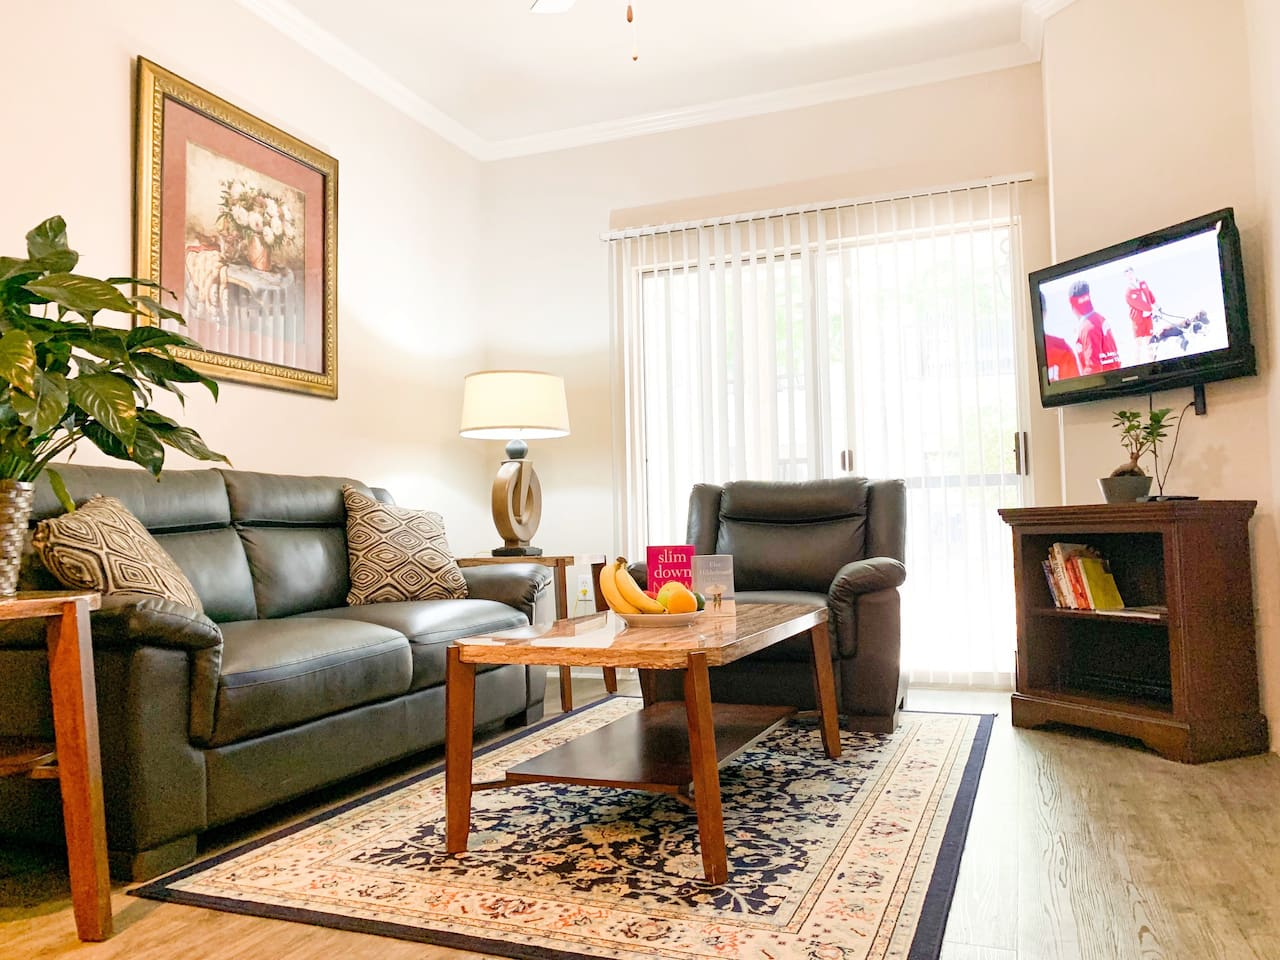 Living Room-Very spacious & includes TV with Netflix, AmazonTV, live TV via Sling TV App. New full-size comfy leather couch, sofa chair, & high speed 50mbps Wifi. Personal outdoor patio access with outdoor table and seating